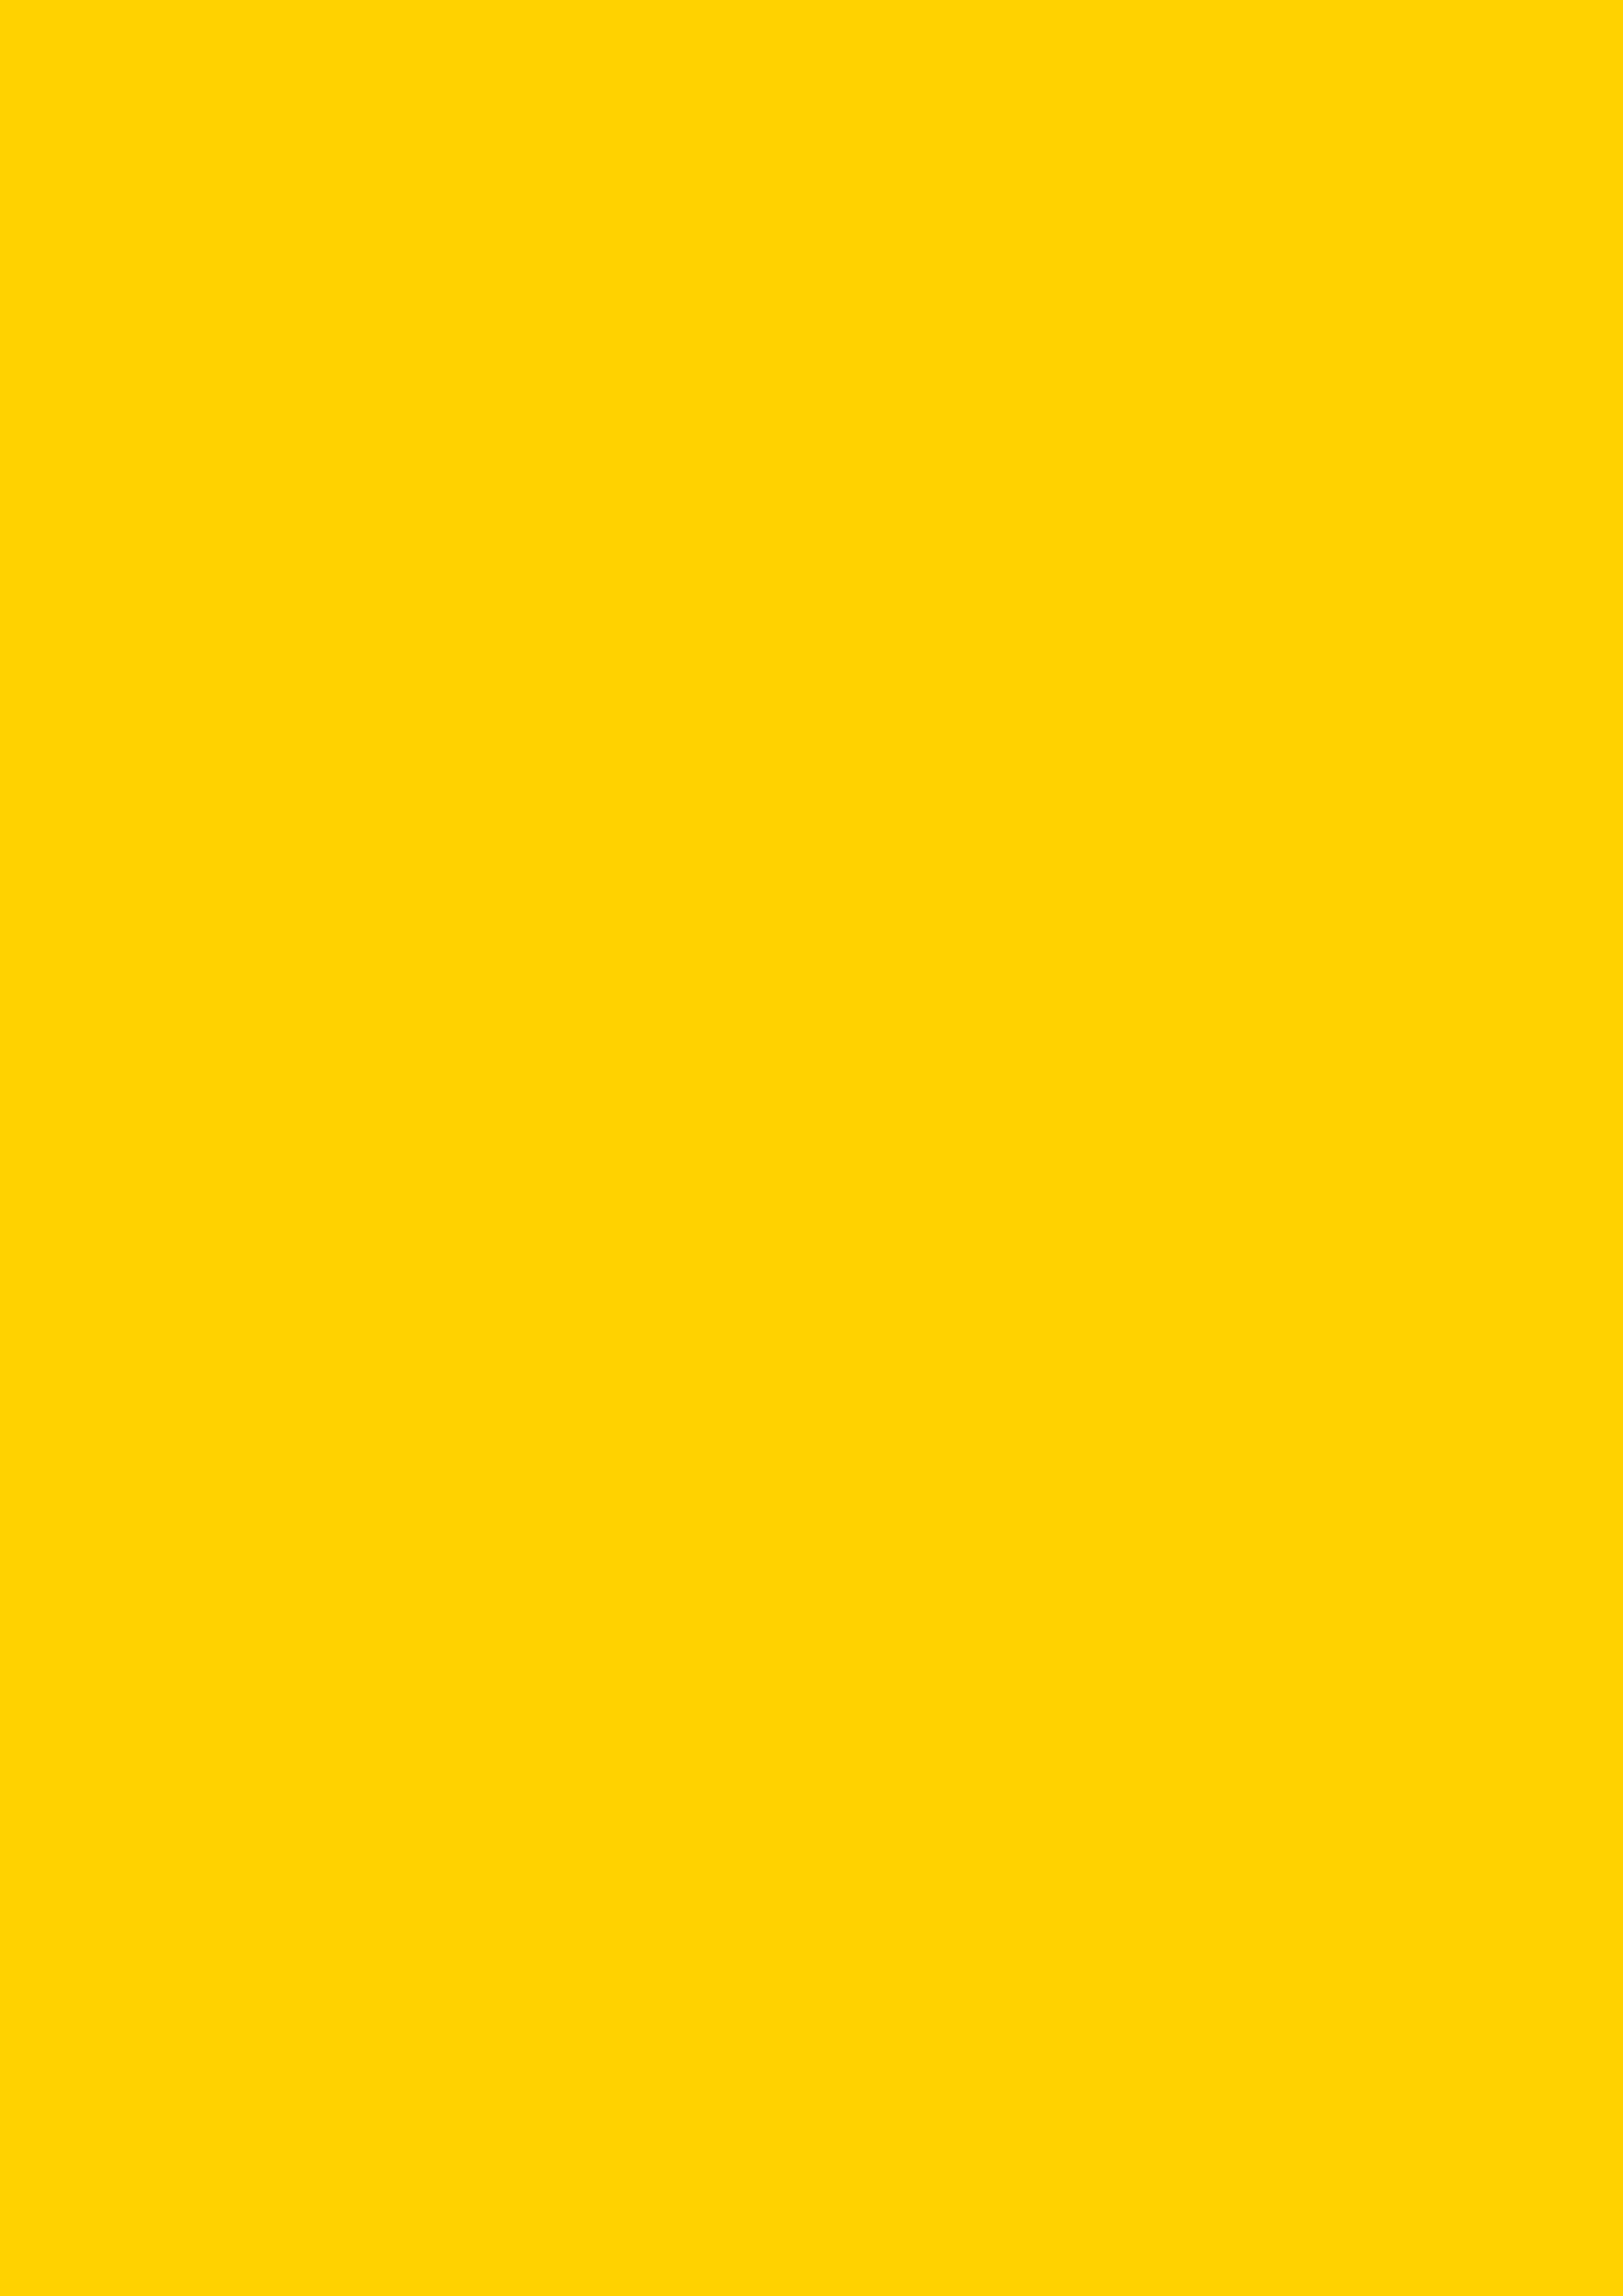 2480x3508 Yellow NCS Solid Color Background